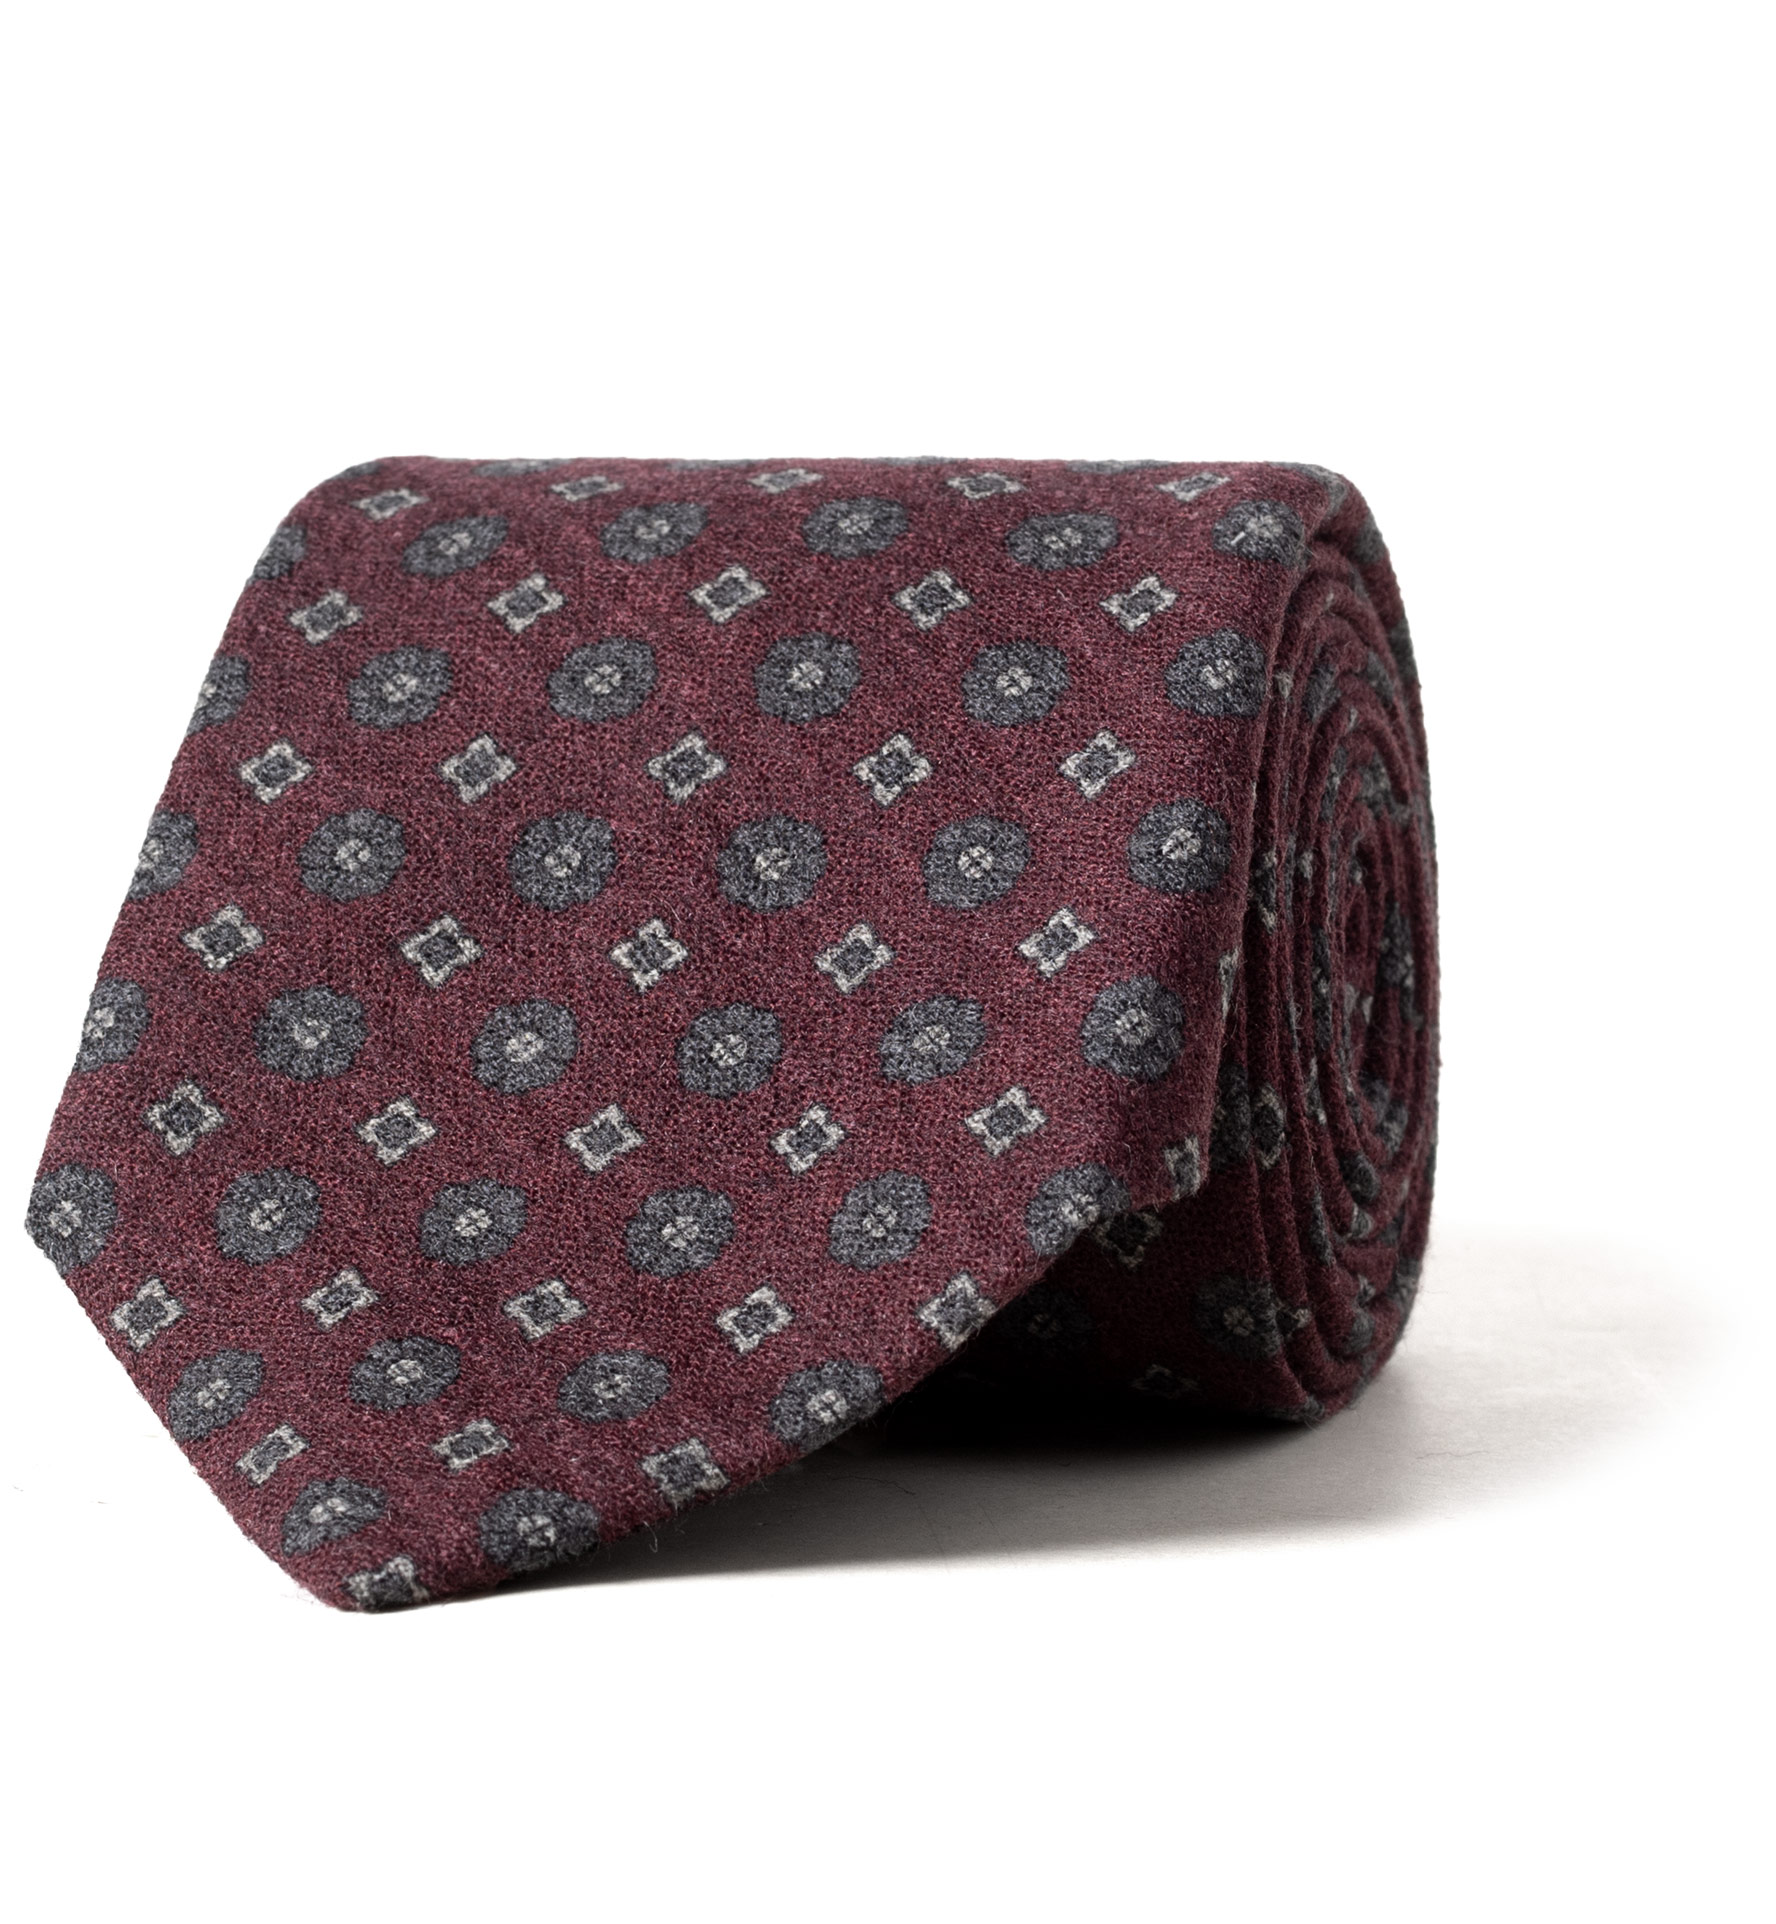 Zoom Image of Burgundy Printed Wool Foulard Tie